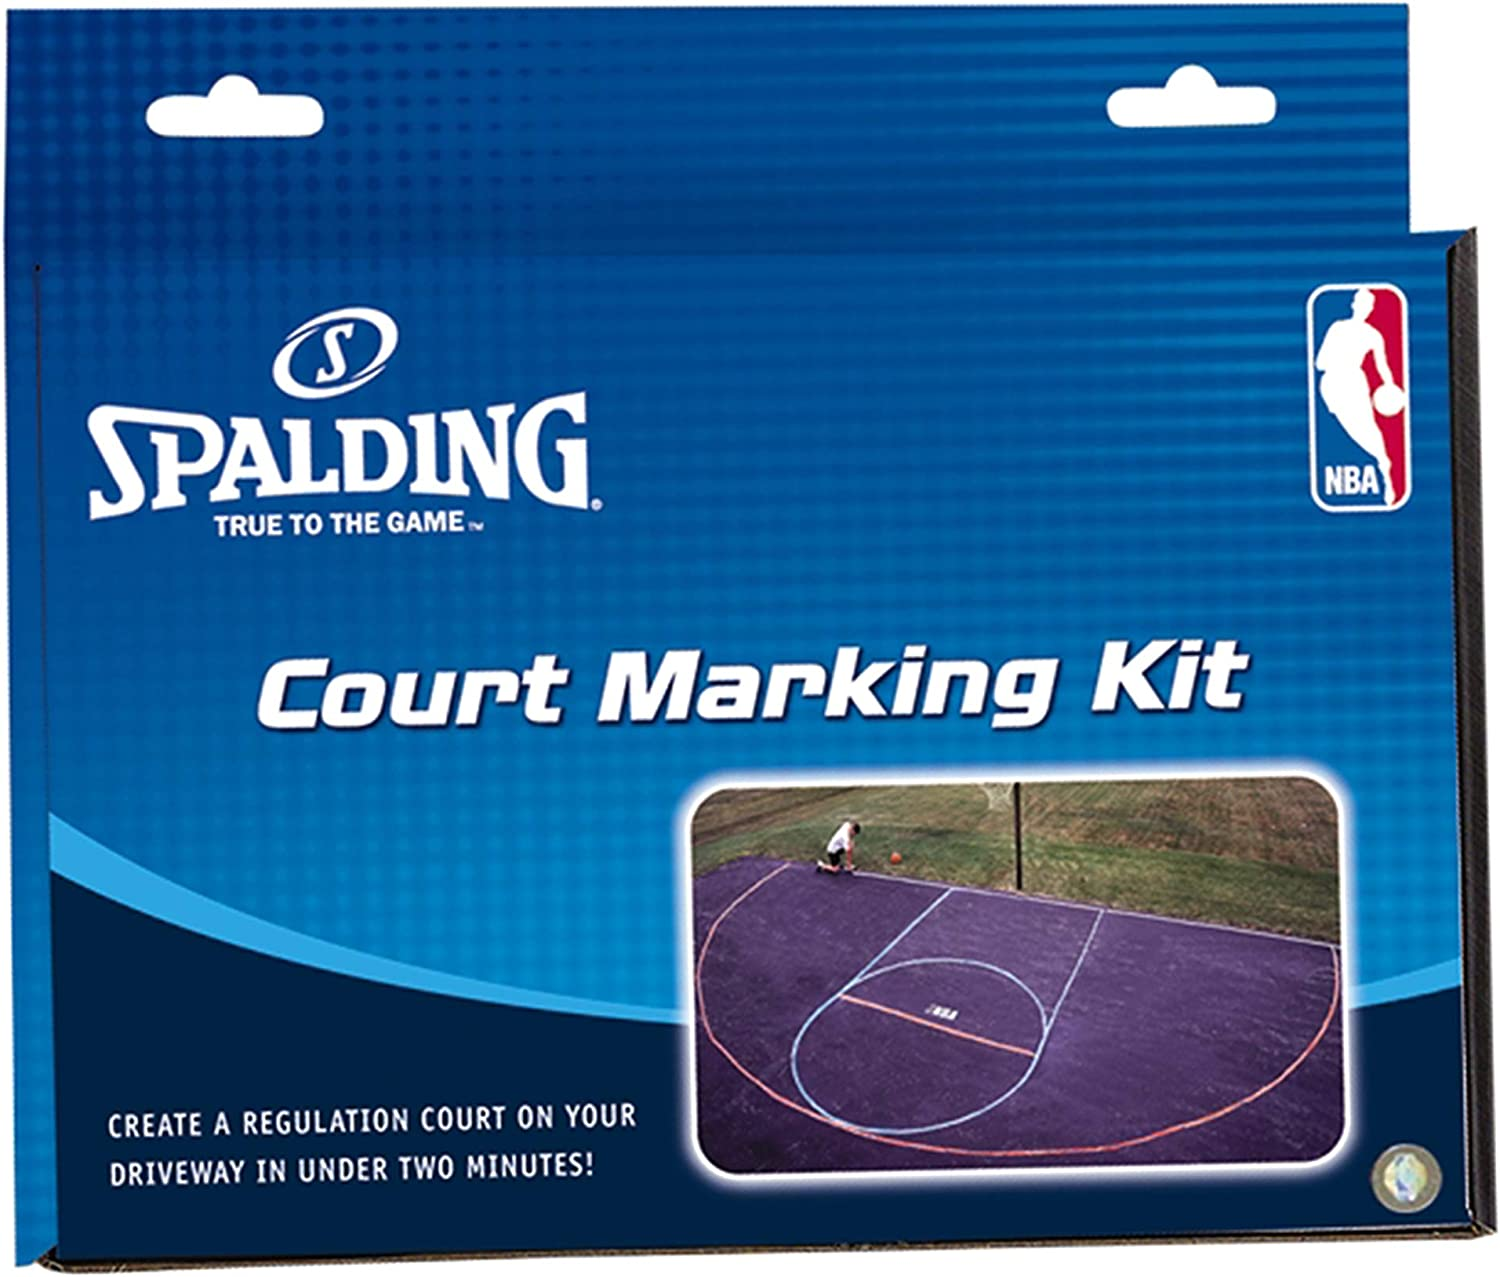 Spalding Basketball Court Marking Kit Sports Outdoors Amazon Canada